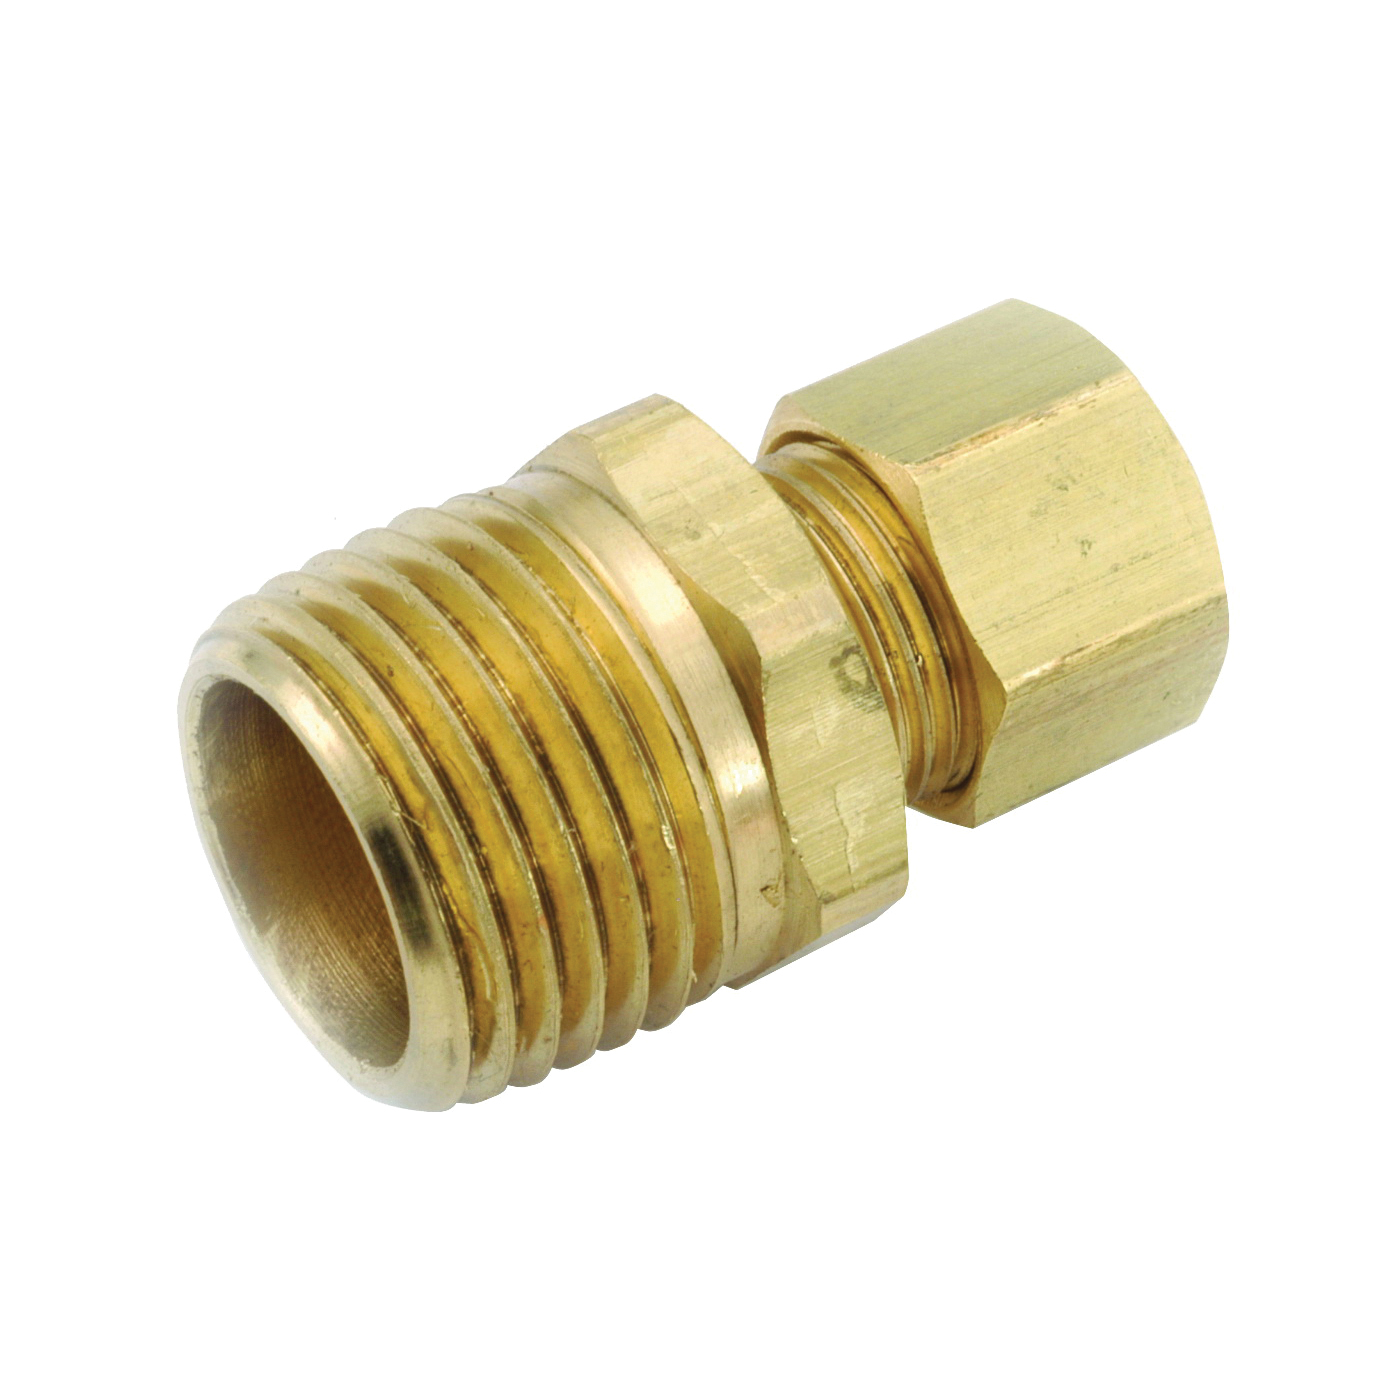 Picture of Anderson Metals 750068-0808 Connector, 1/2 in Compression, 1/2 in Male